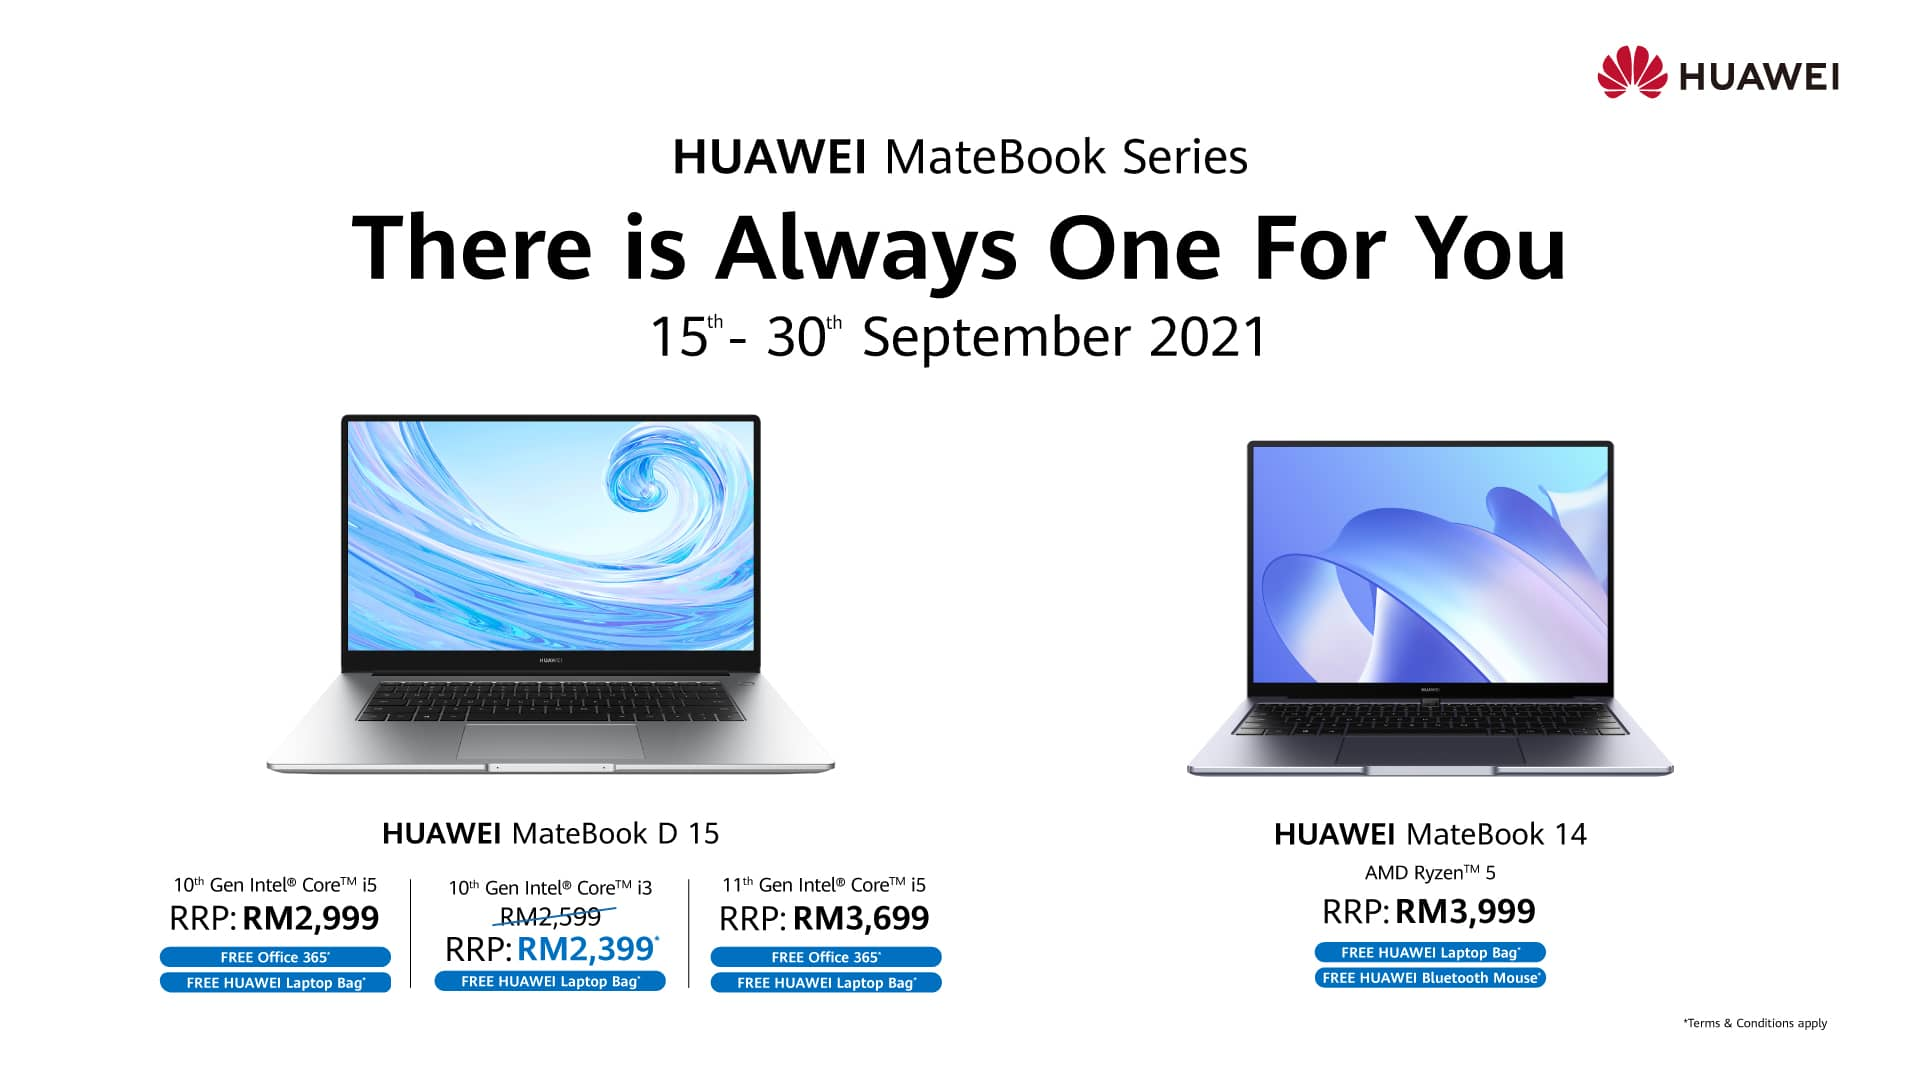 Experience Efficiency at its Finest With HUAWEI MateBook D15 i3, Priced at Only RM2,399